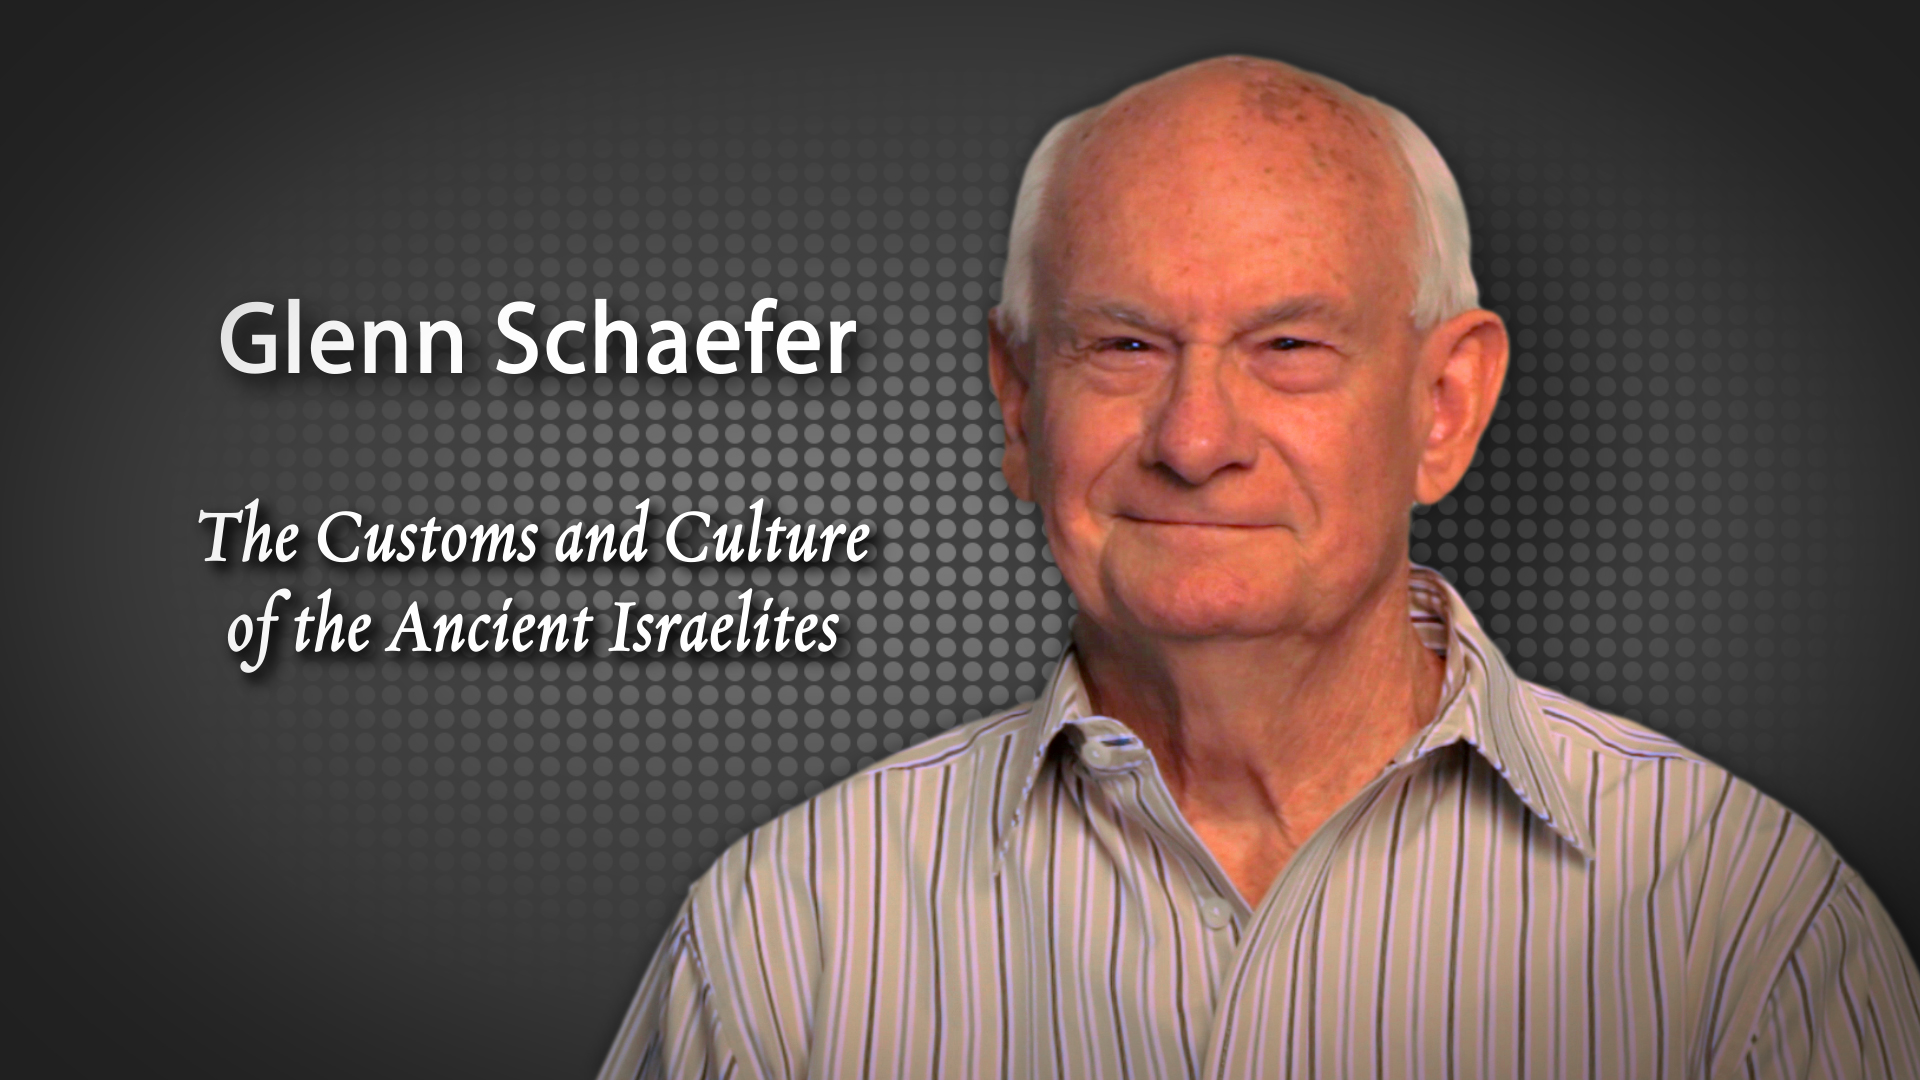 SU for Seniors Glenn Schaefer Presenter Video. Click to view.